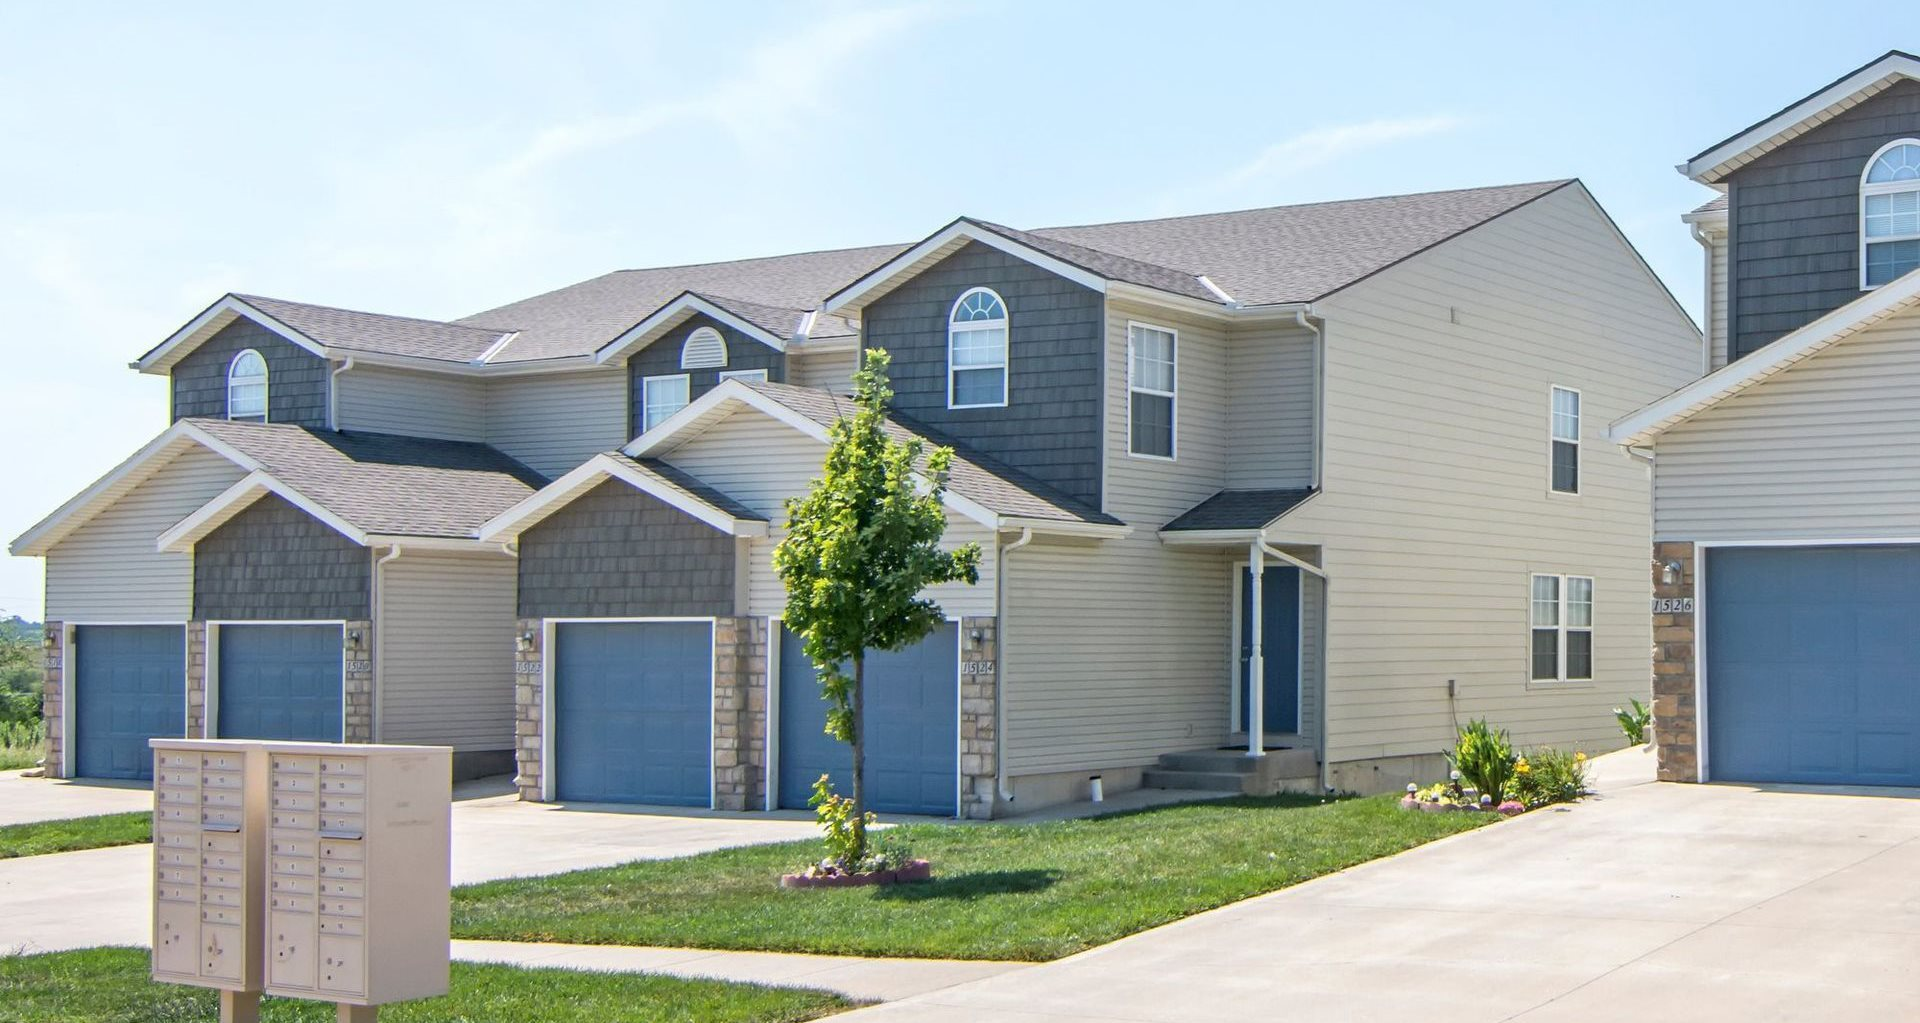 Patriot Pointe Townhomes Exterior in Junction City, KS